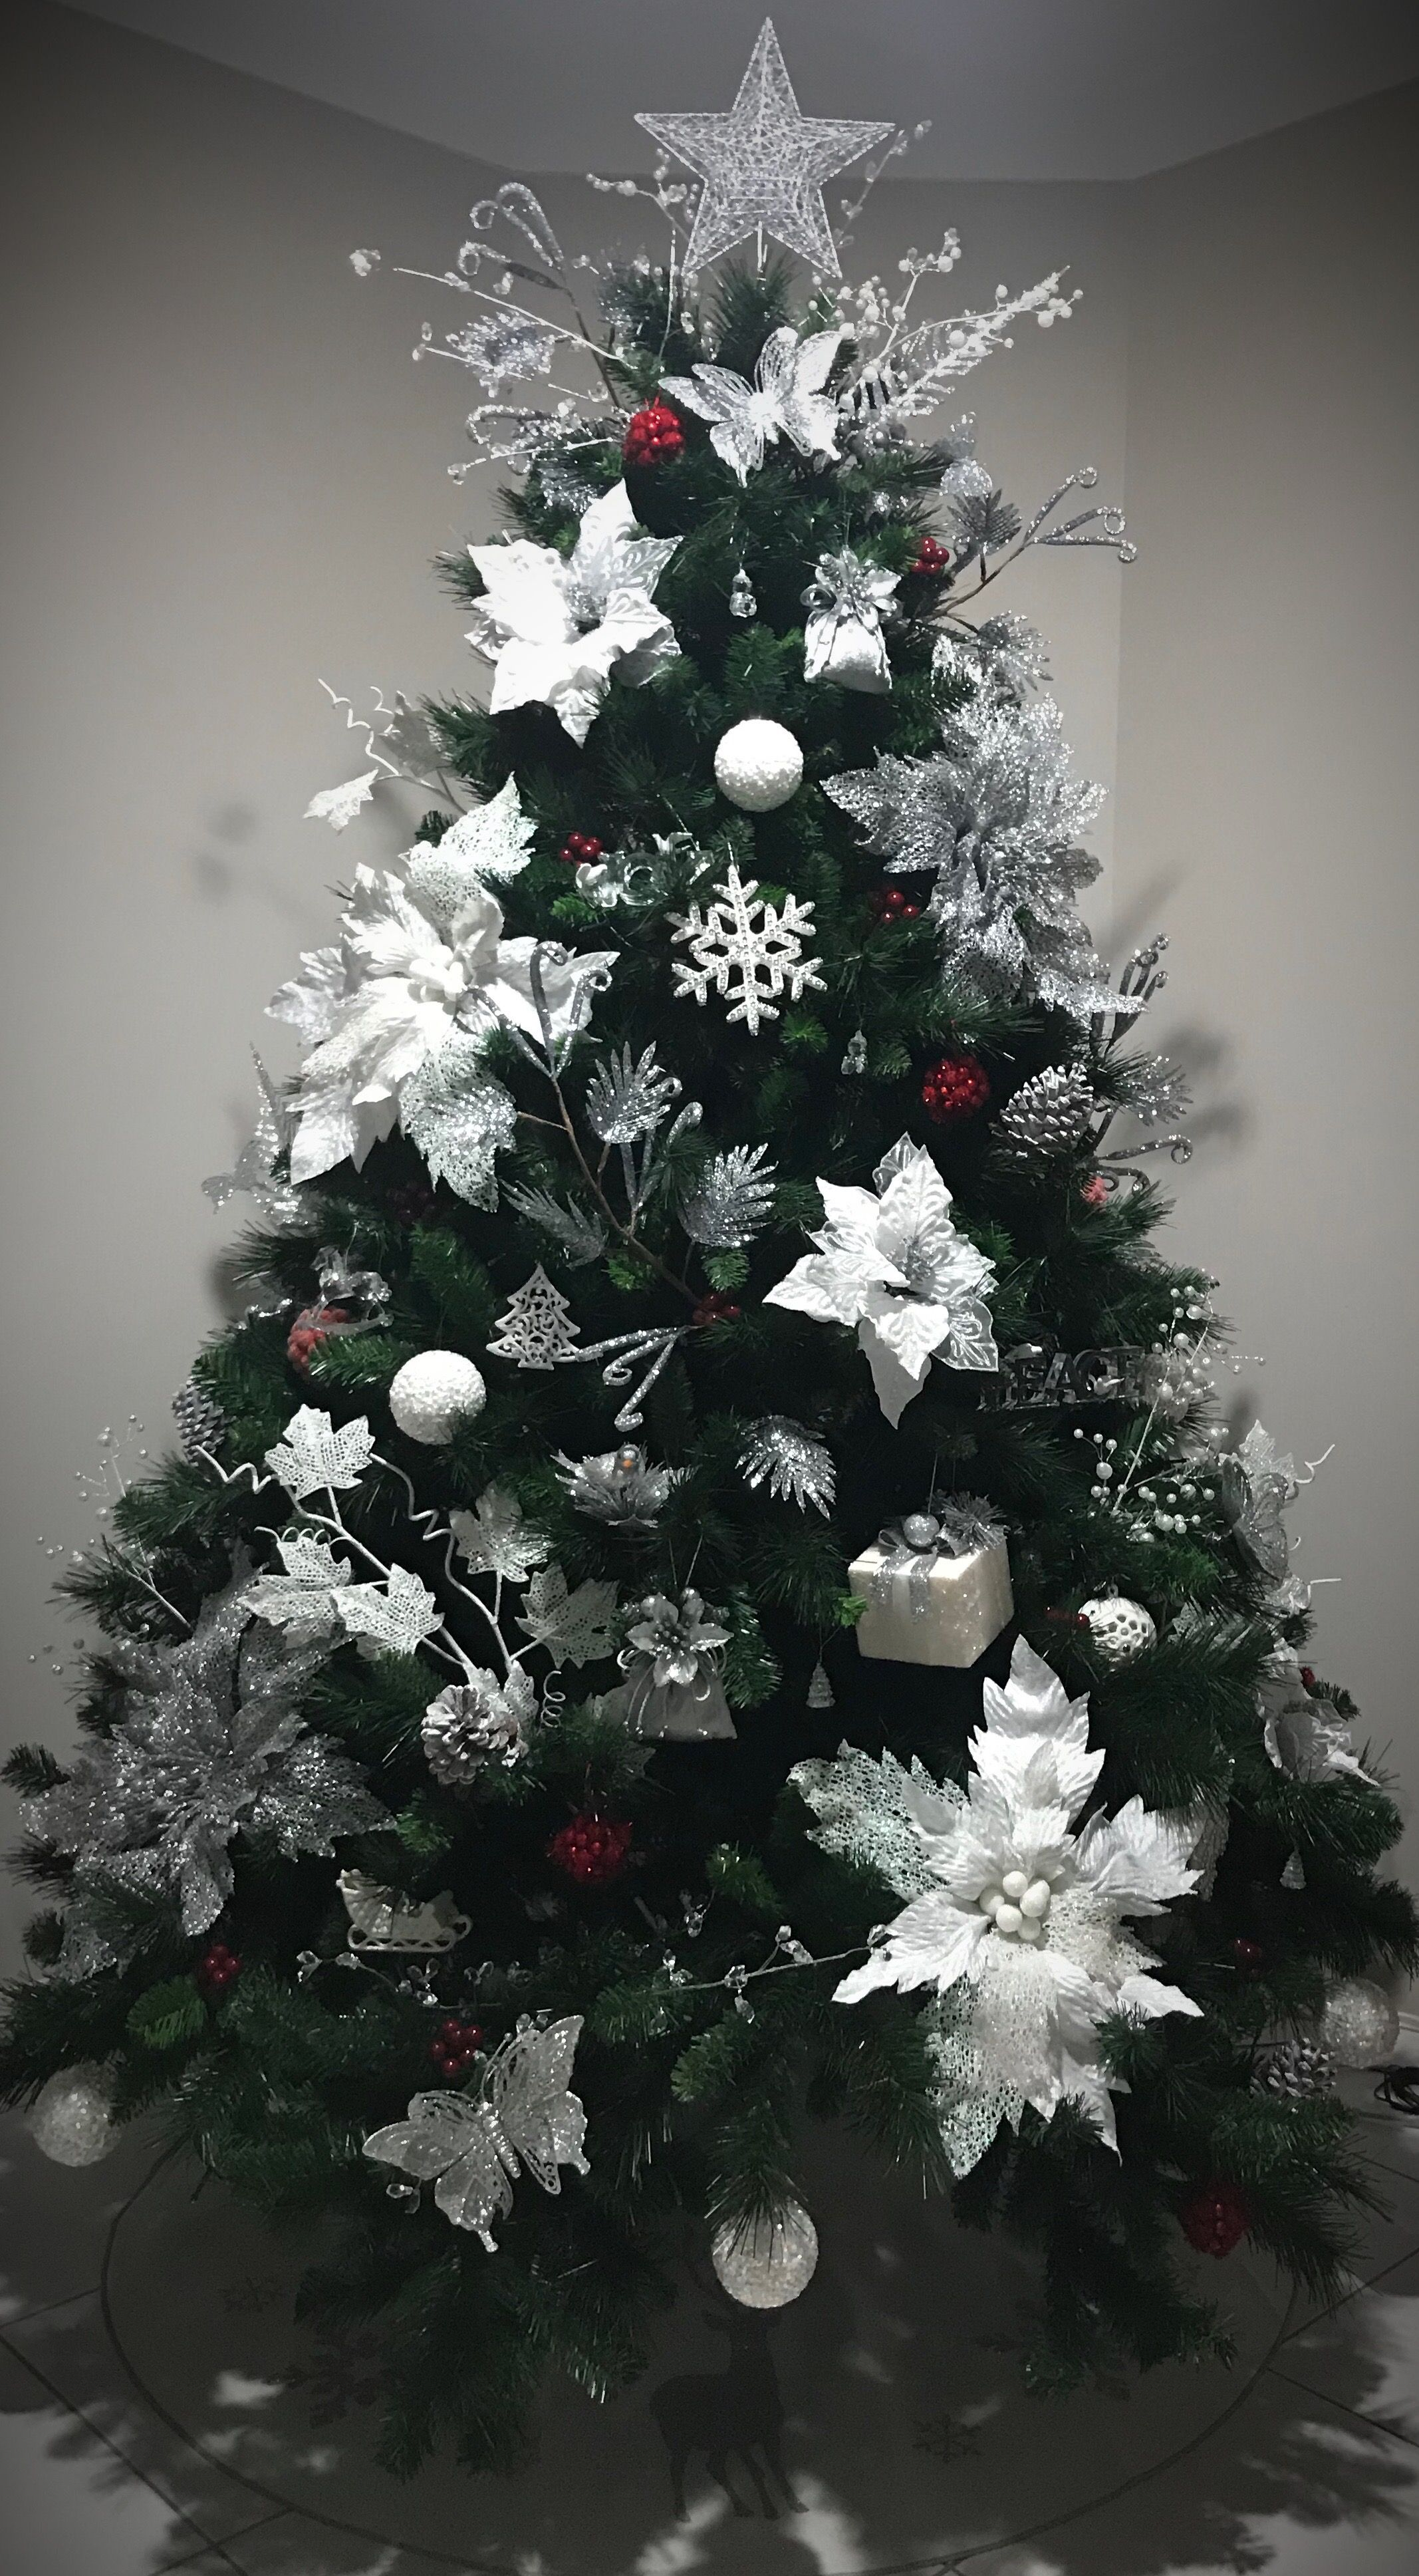 White Silver Poinsettia Christmas Tree Christmas Tree Xmas Decorations Christmas